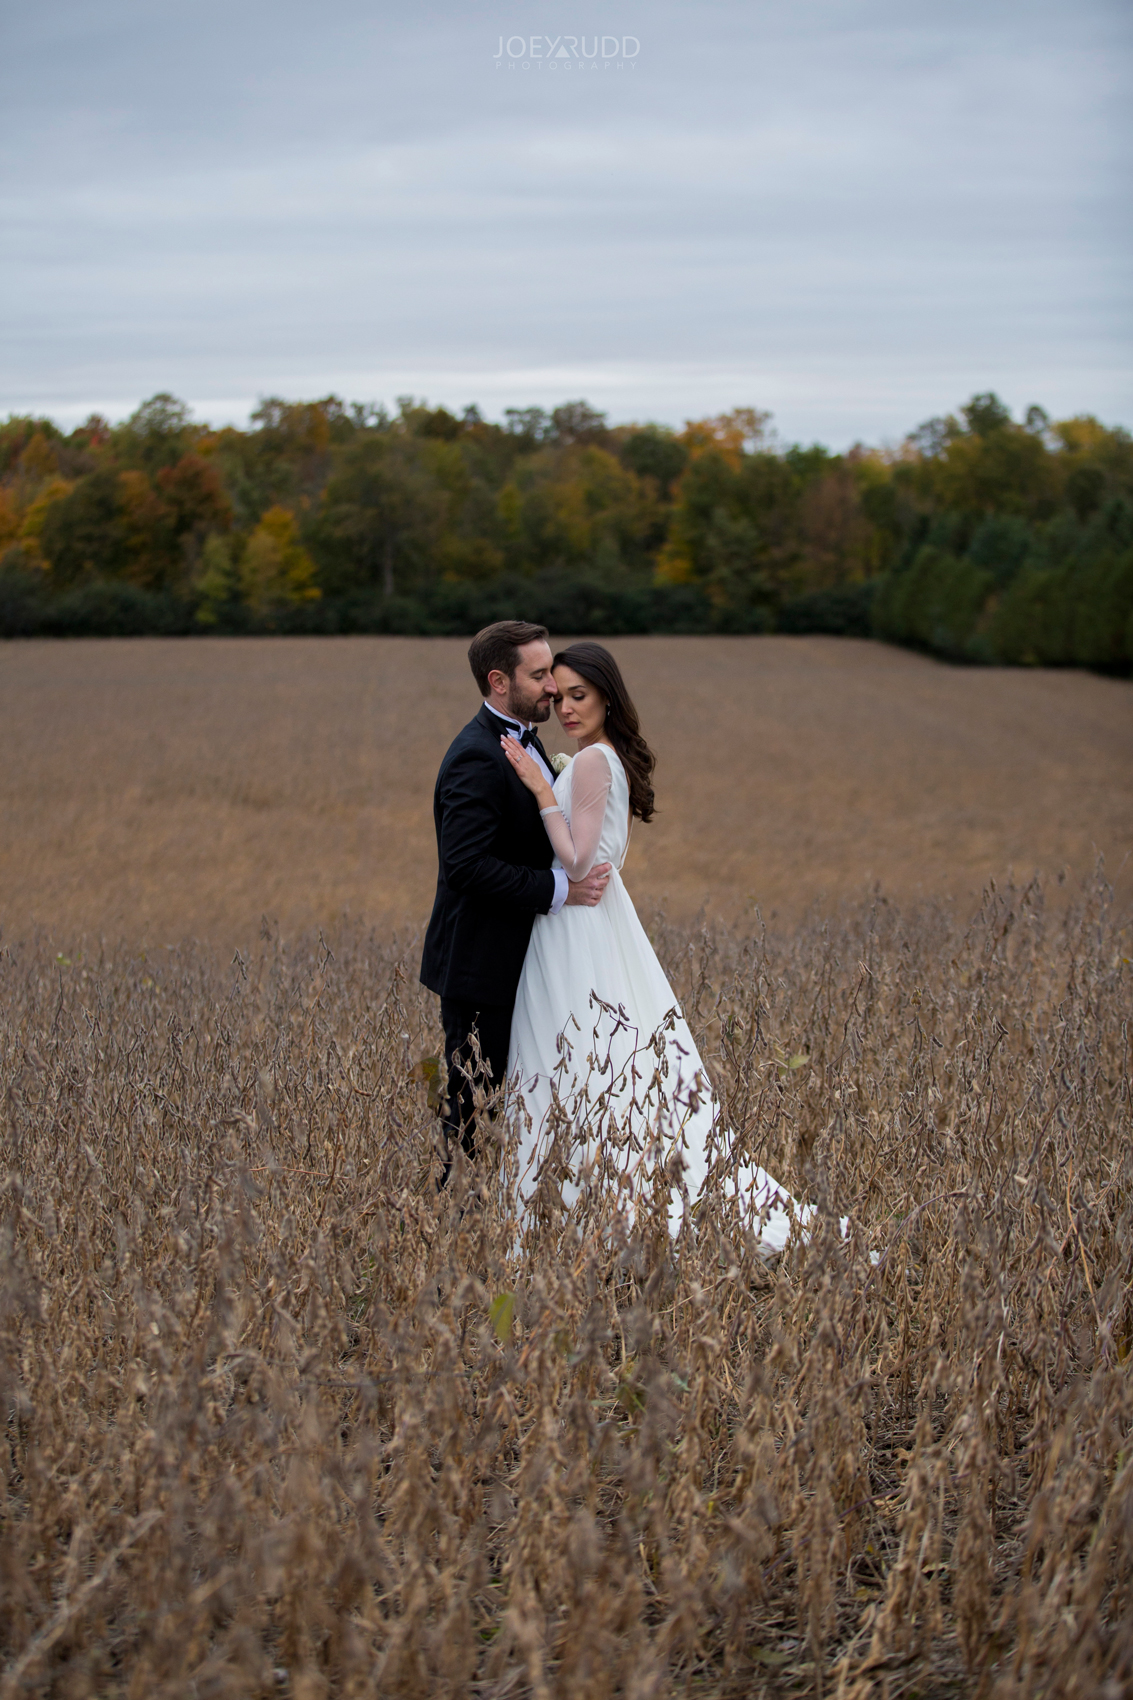 2018_10_07---Aksana-&-Mark-714TopRight.jpgEvermore Wedding, Evermore Wedding and Events, Ottawa Wedding, Almonte Wedding, Ottawa Photographer, Wedding Photography, Wedding Photographer, Joey Rudd Photography, Farm Wedding, Rustic Wedding, Barn Wedding Venue, Wedding Venue, Ottawa Wedding Venue, Almonte Riverside Inn, Candid, field wedding photo, posing